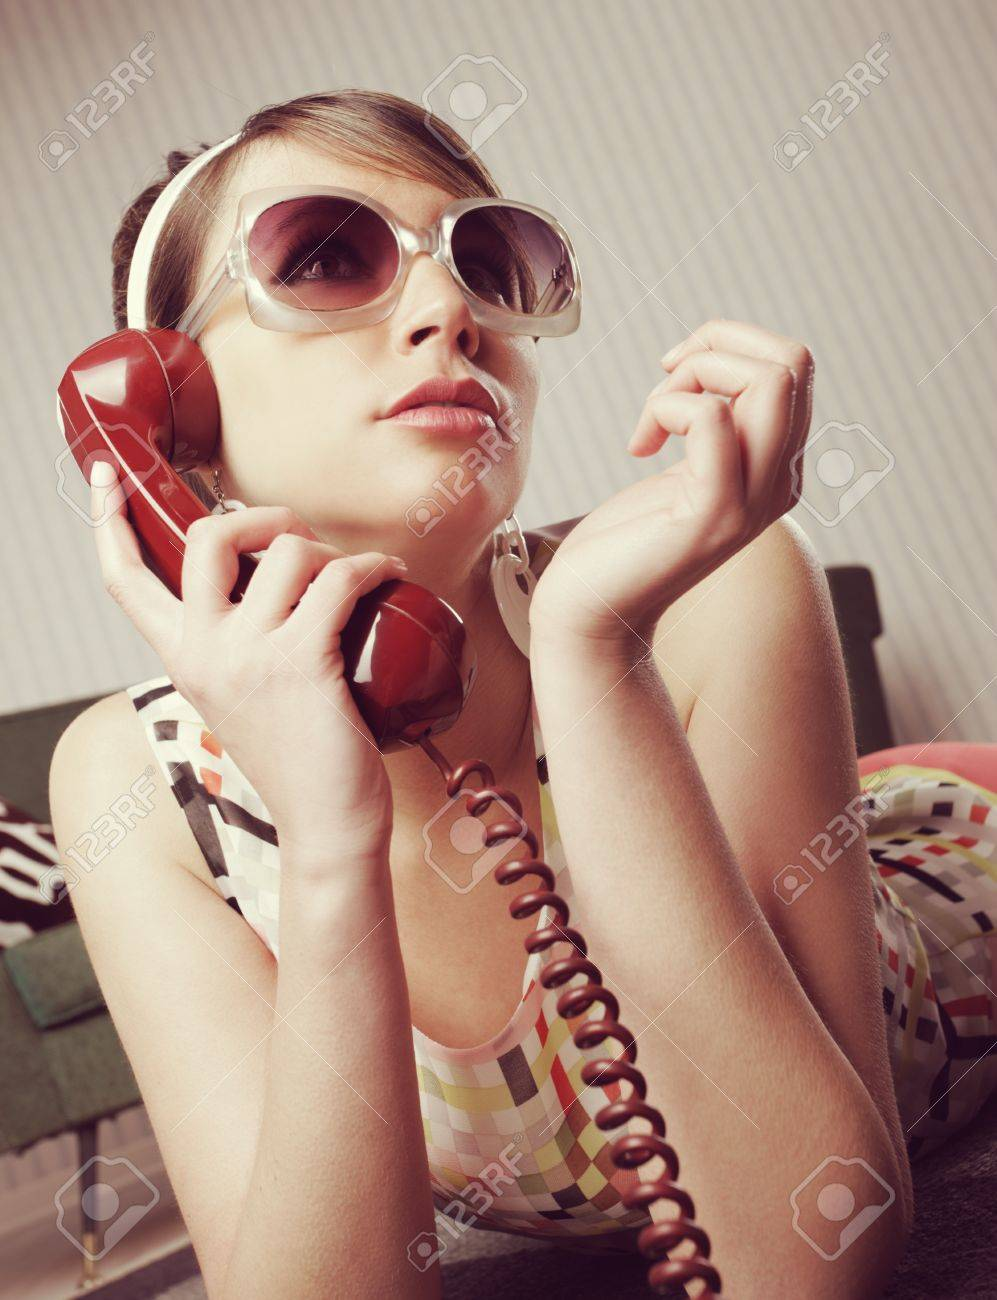 Fashion model talking on the phone at home Stock Photo - 21510575